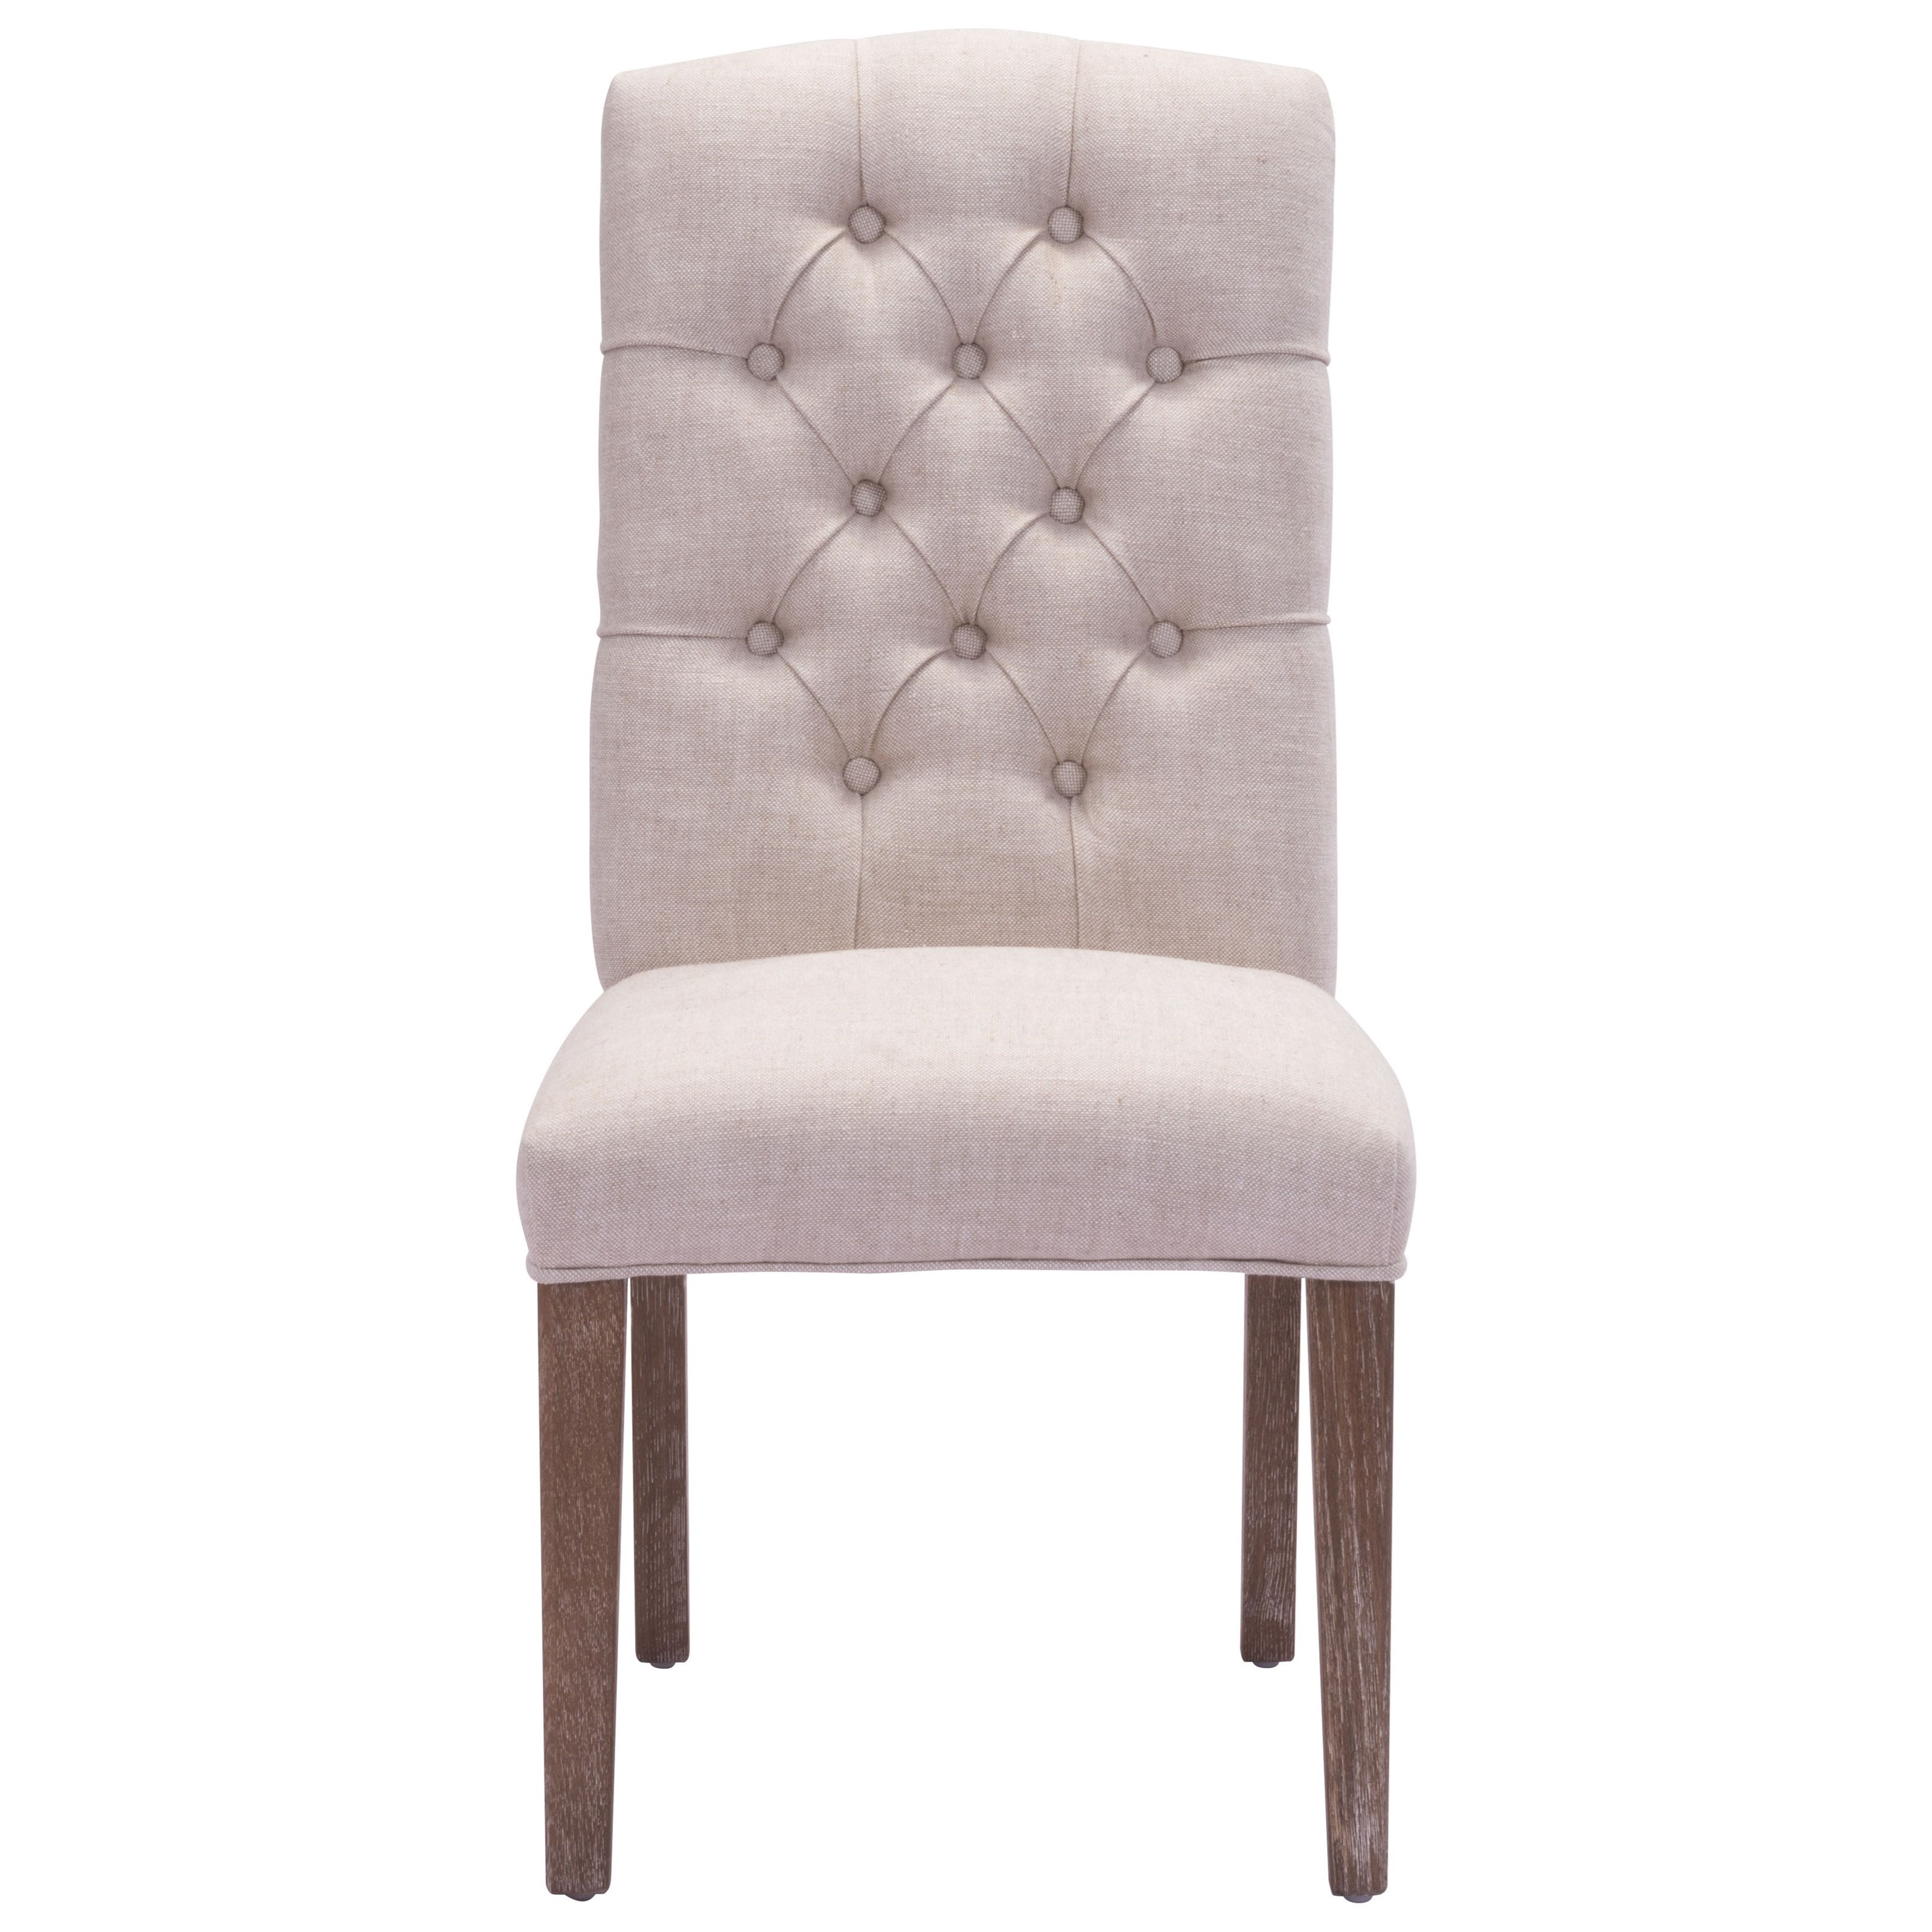 Gough Dining Chair by Zuo at Nassau Furniture and Mattress